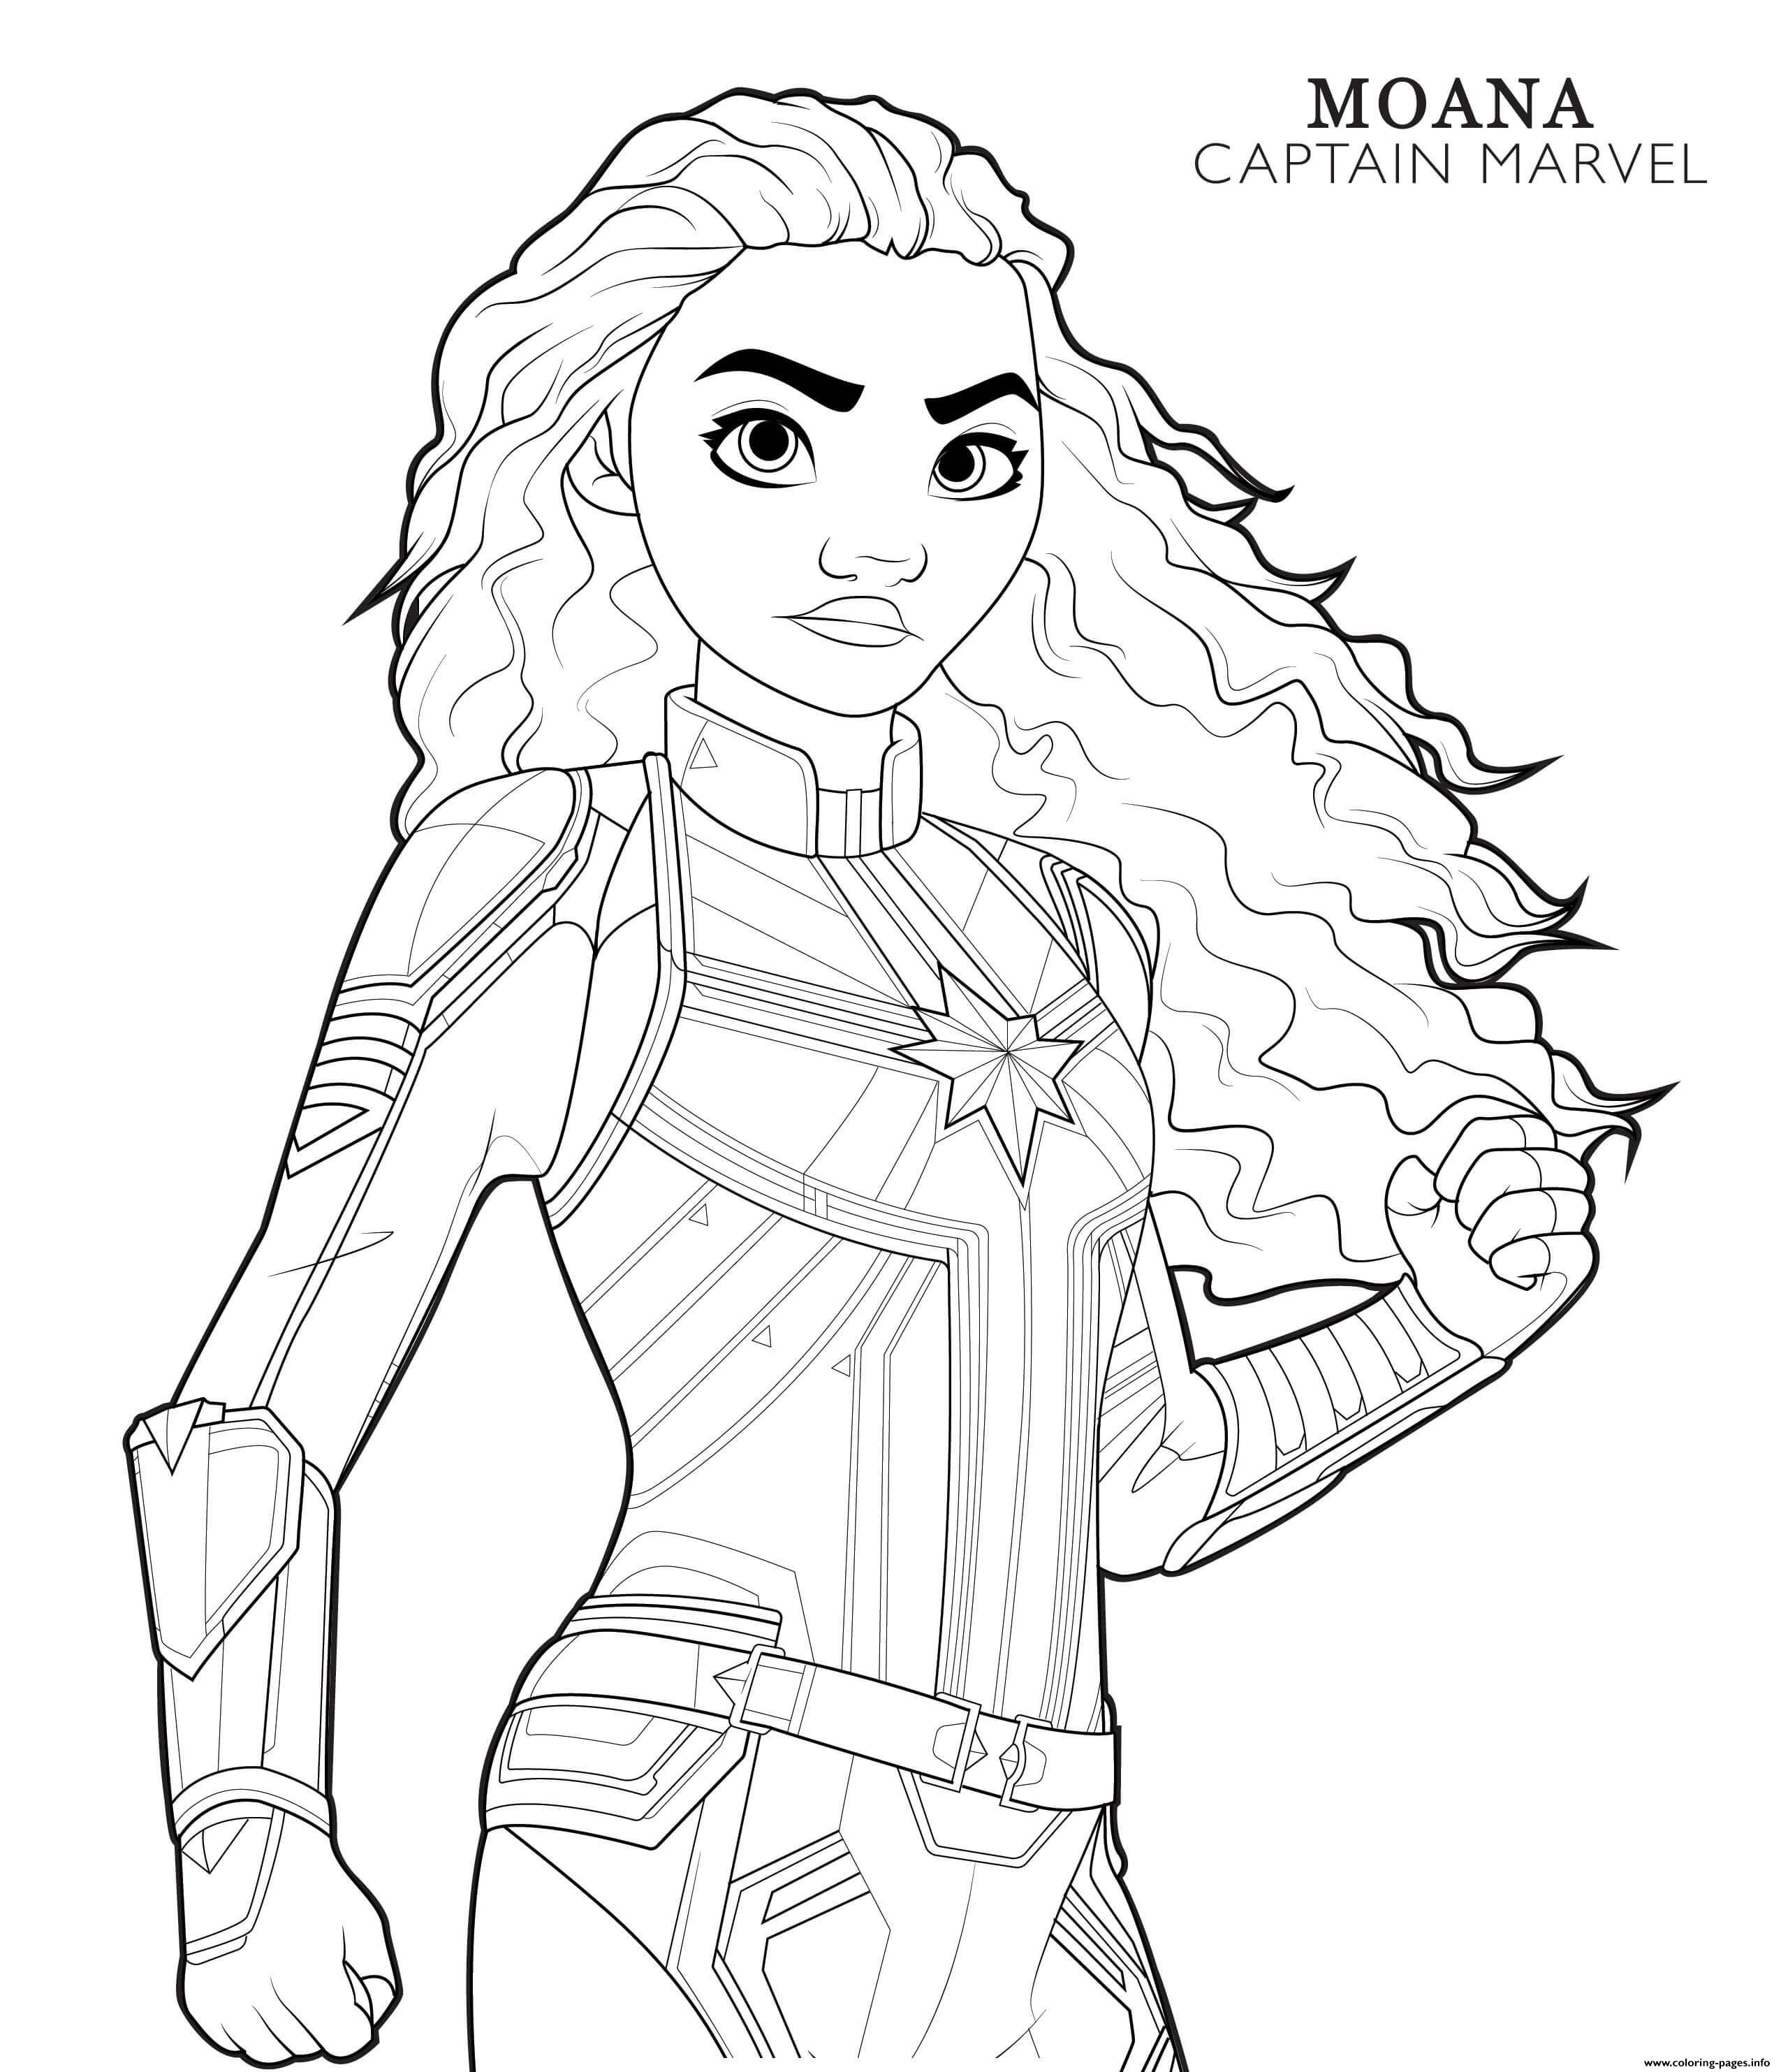 Captain Marvel Moana Disney Avengers Coloring Pages Printable